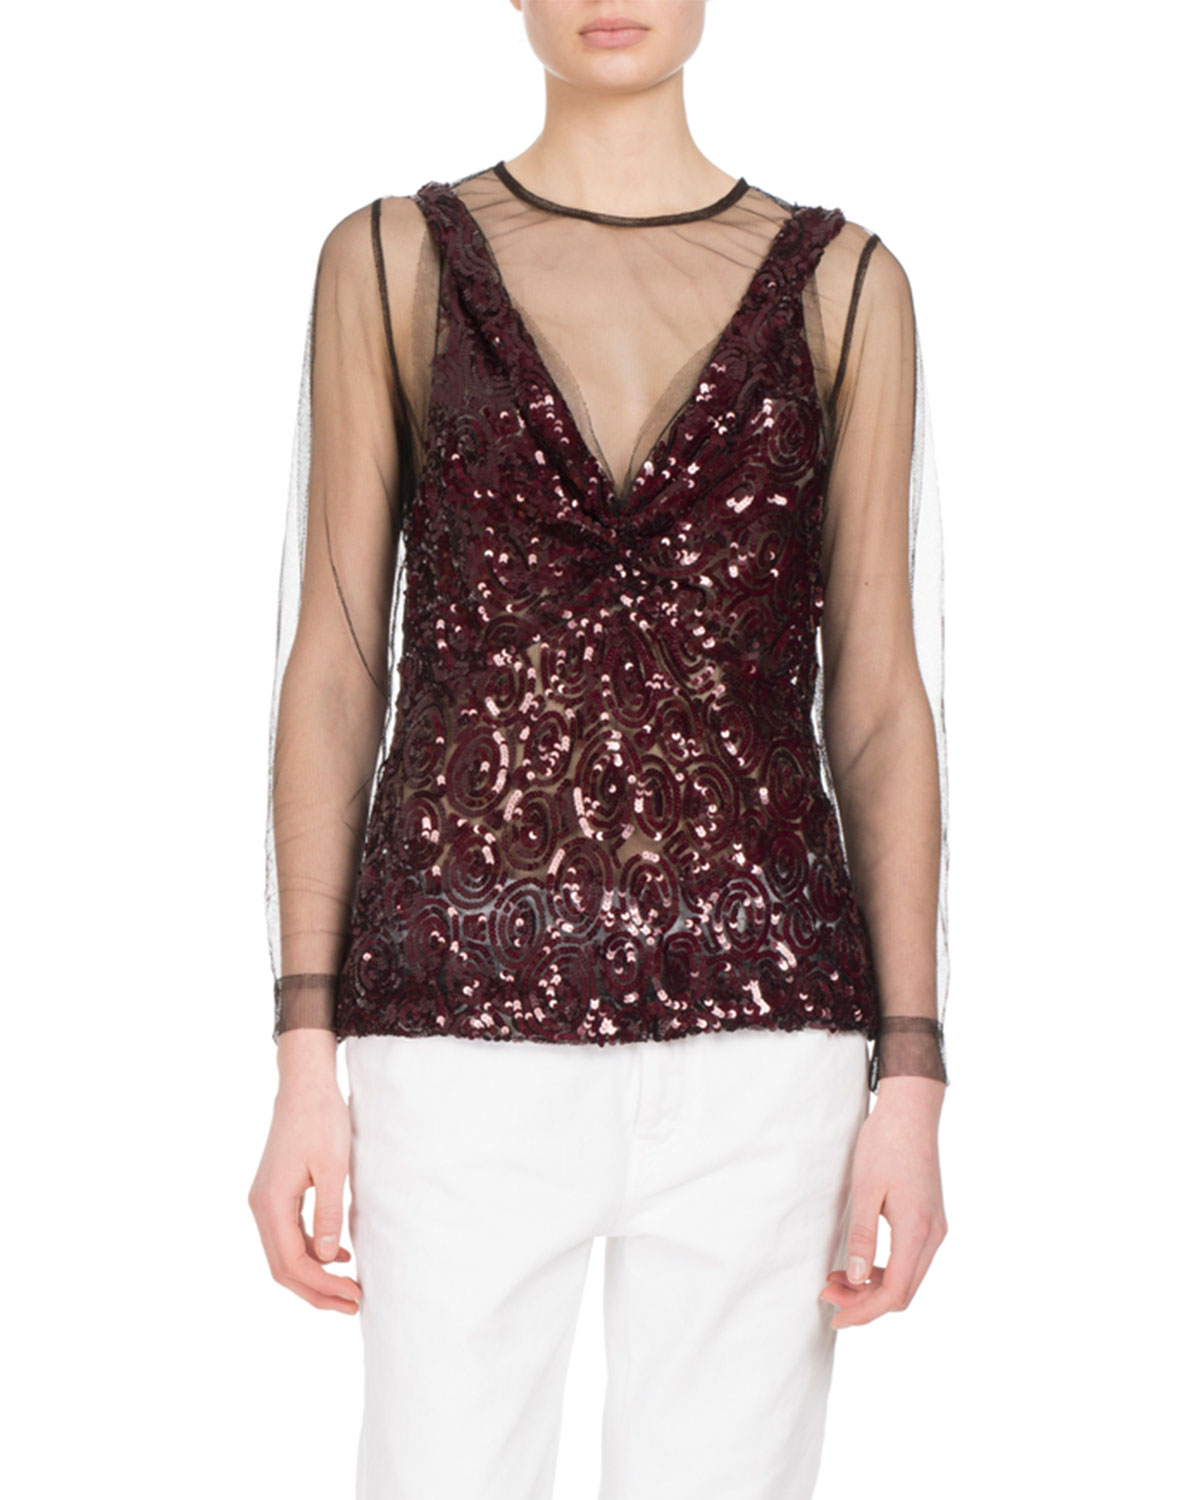 Carti Sequined Mesh Top